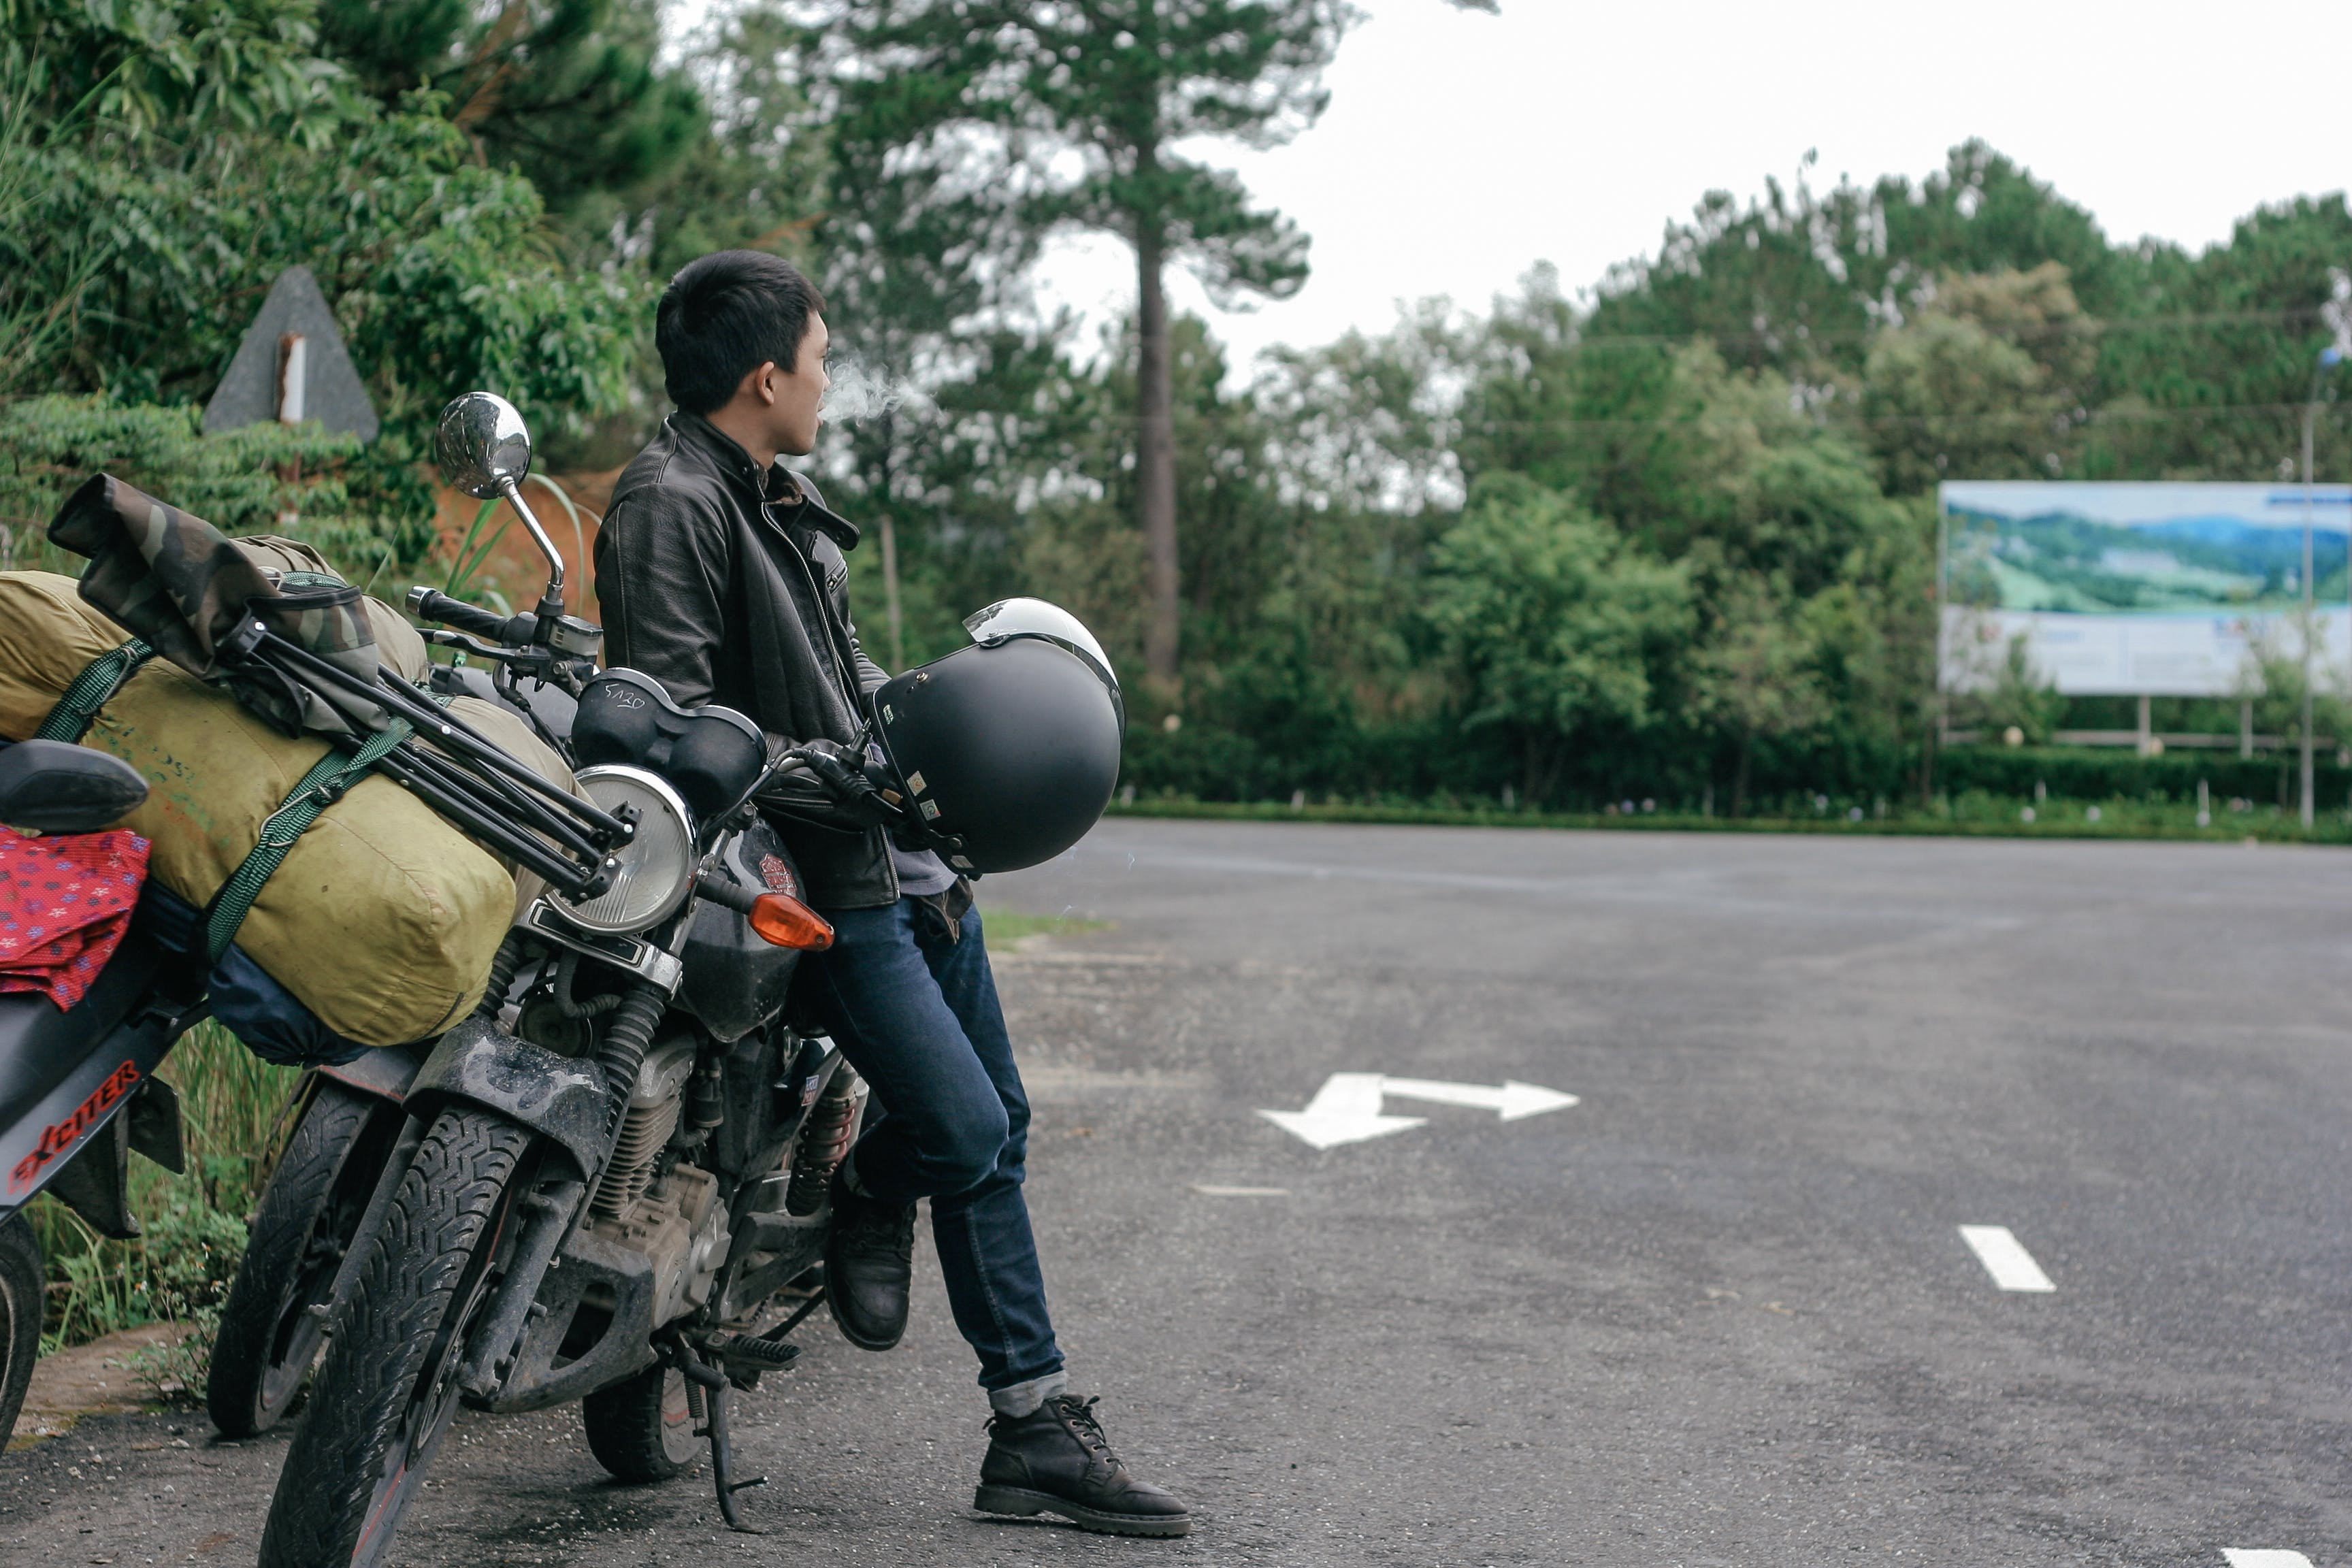 Photo of Man Sitting on Motorcycle